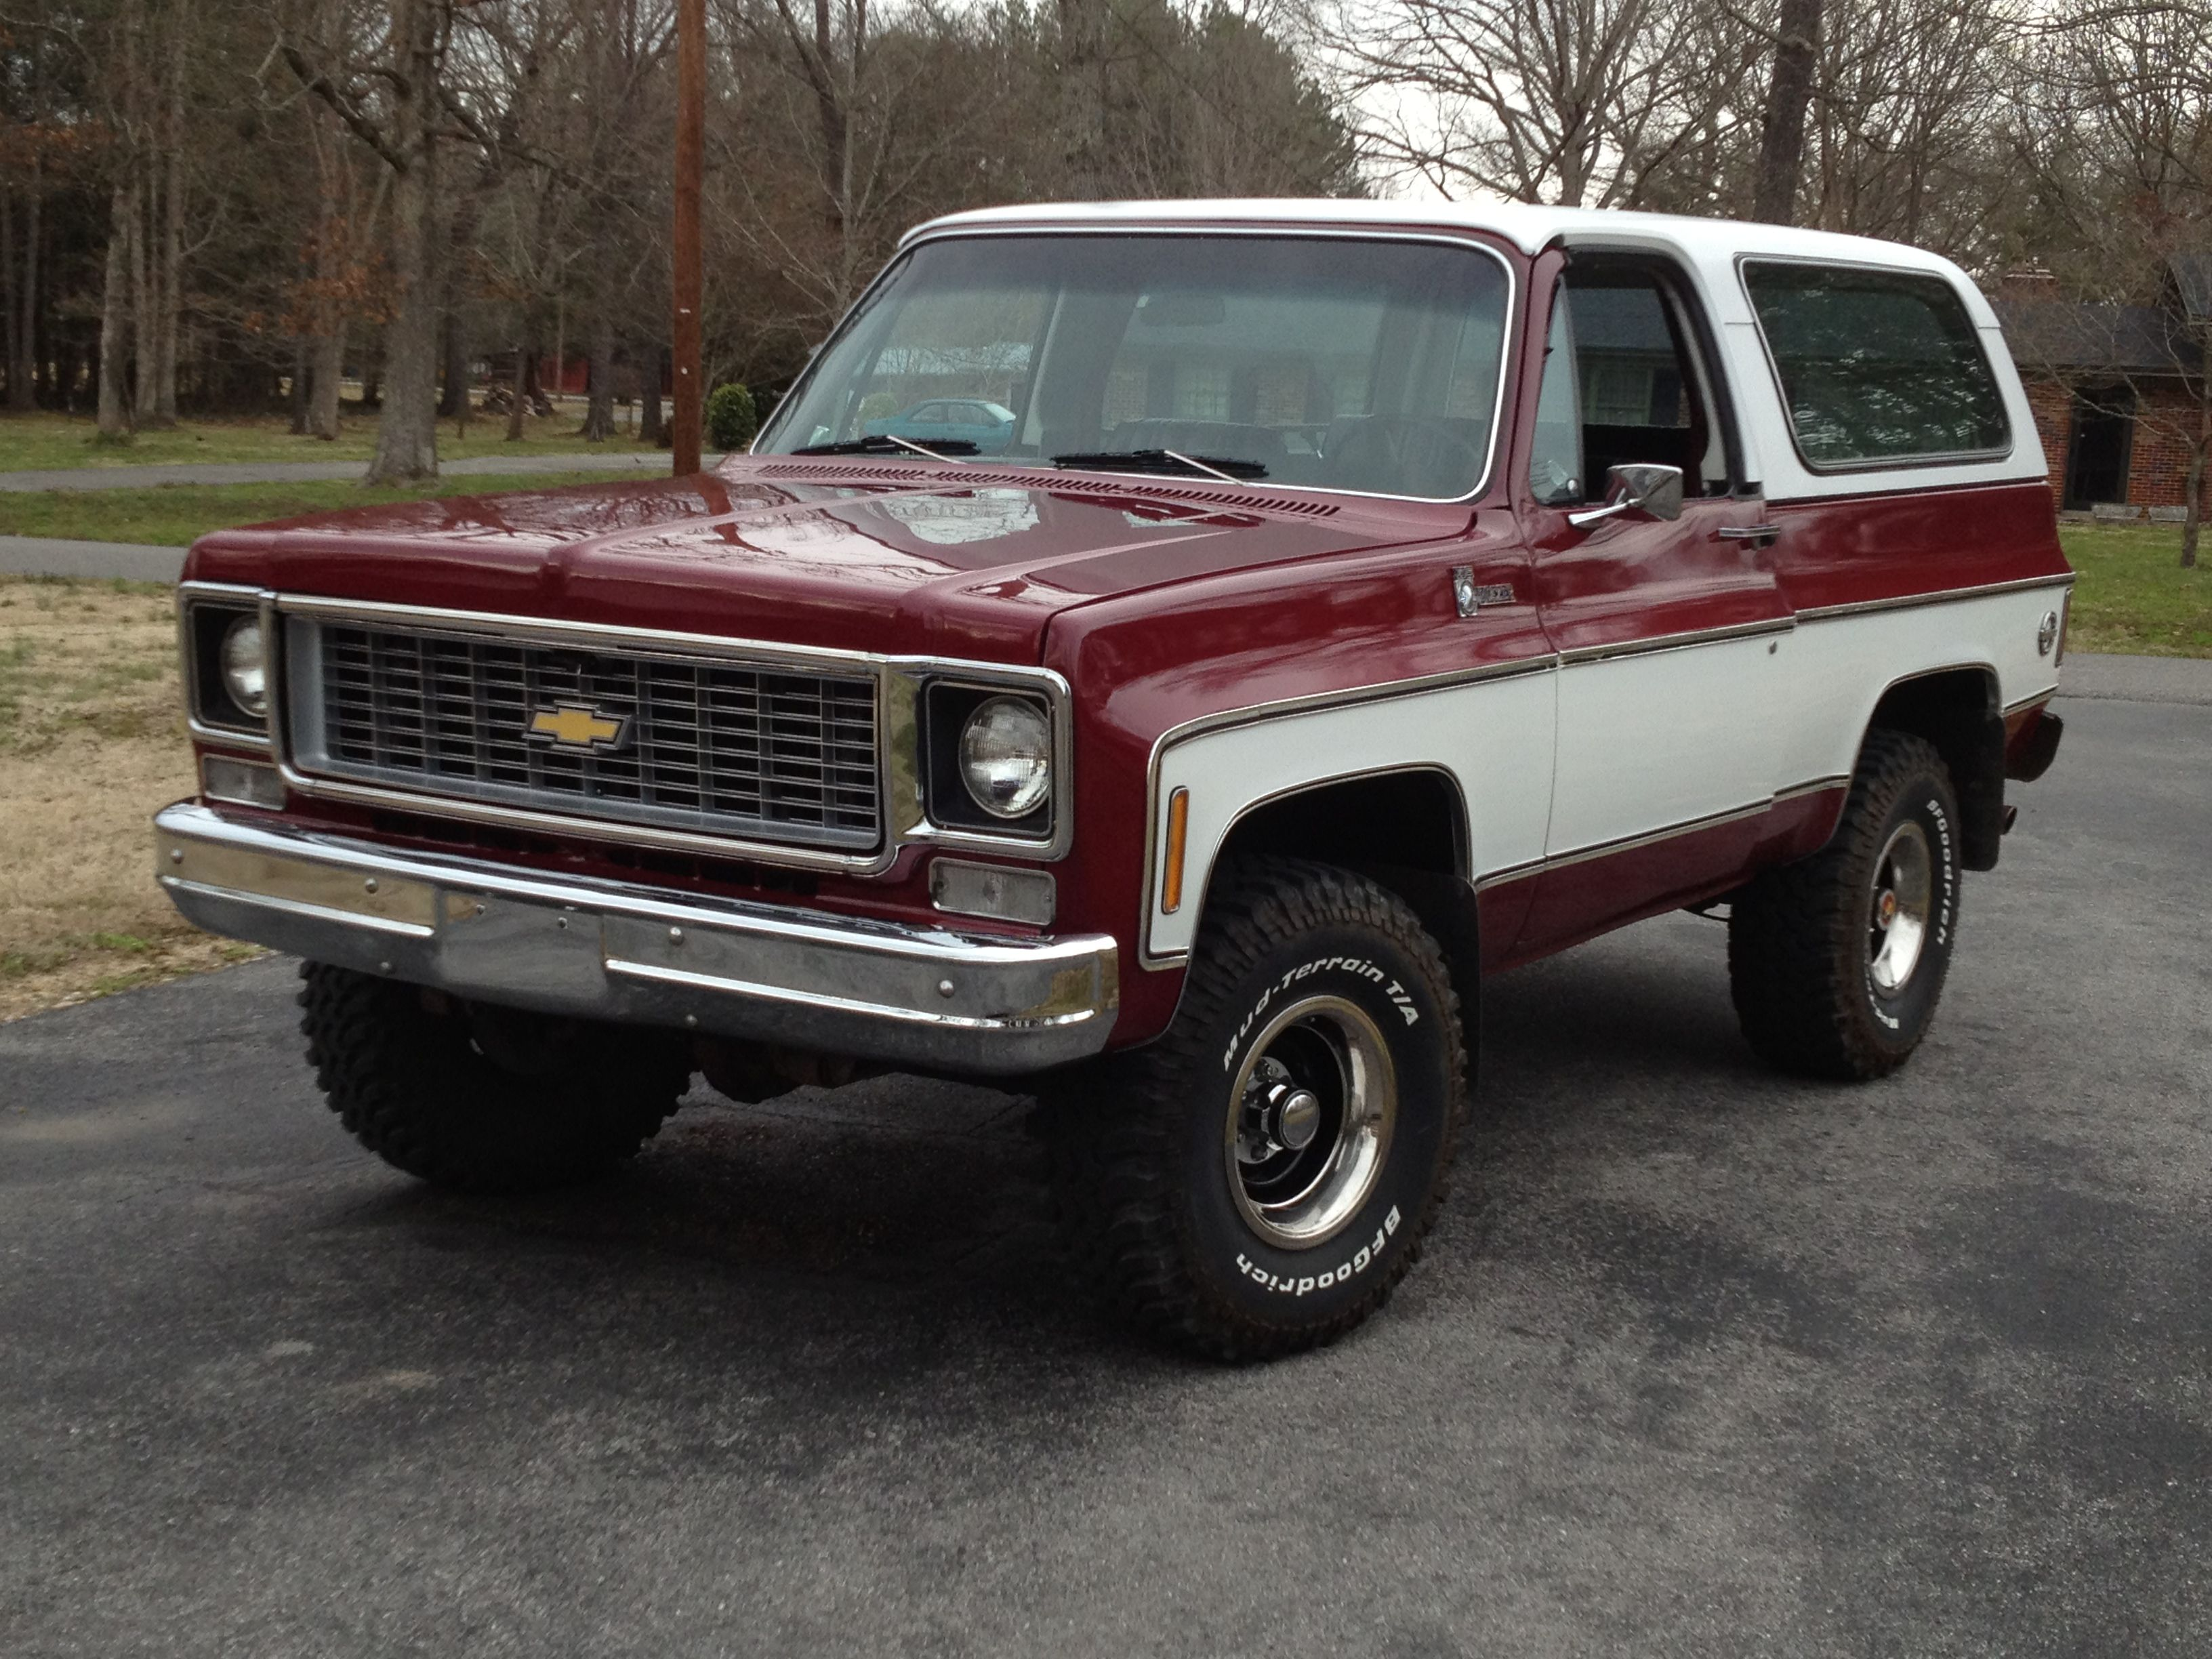 1975 Chevy Blazer (with a 73-74 grille) | Blazers, Broncos, Vans ...